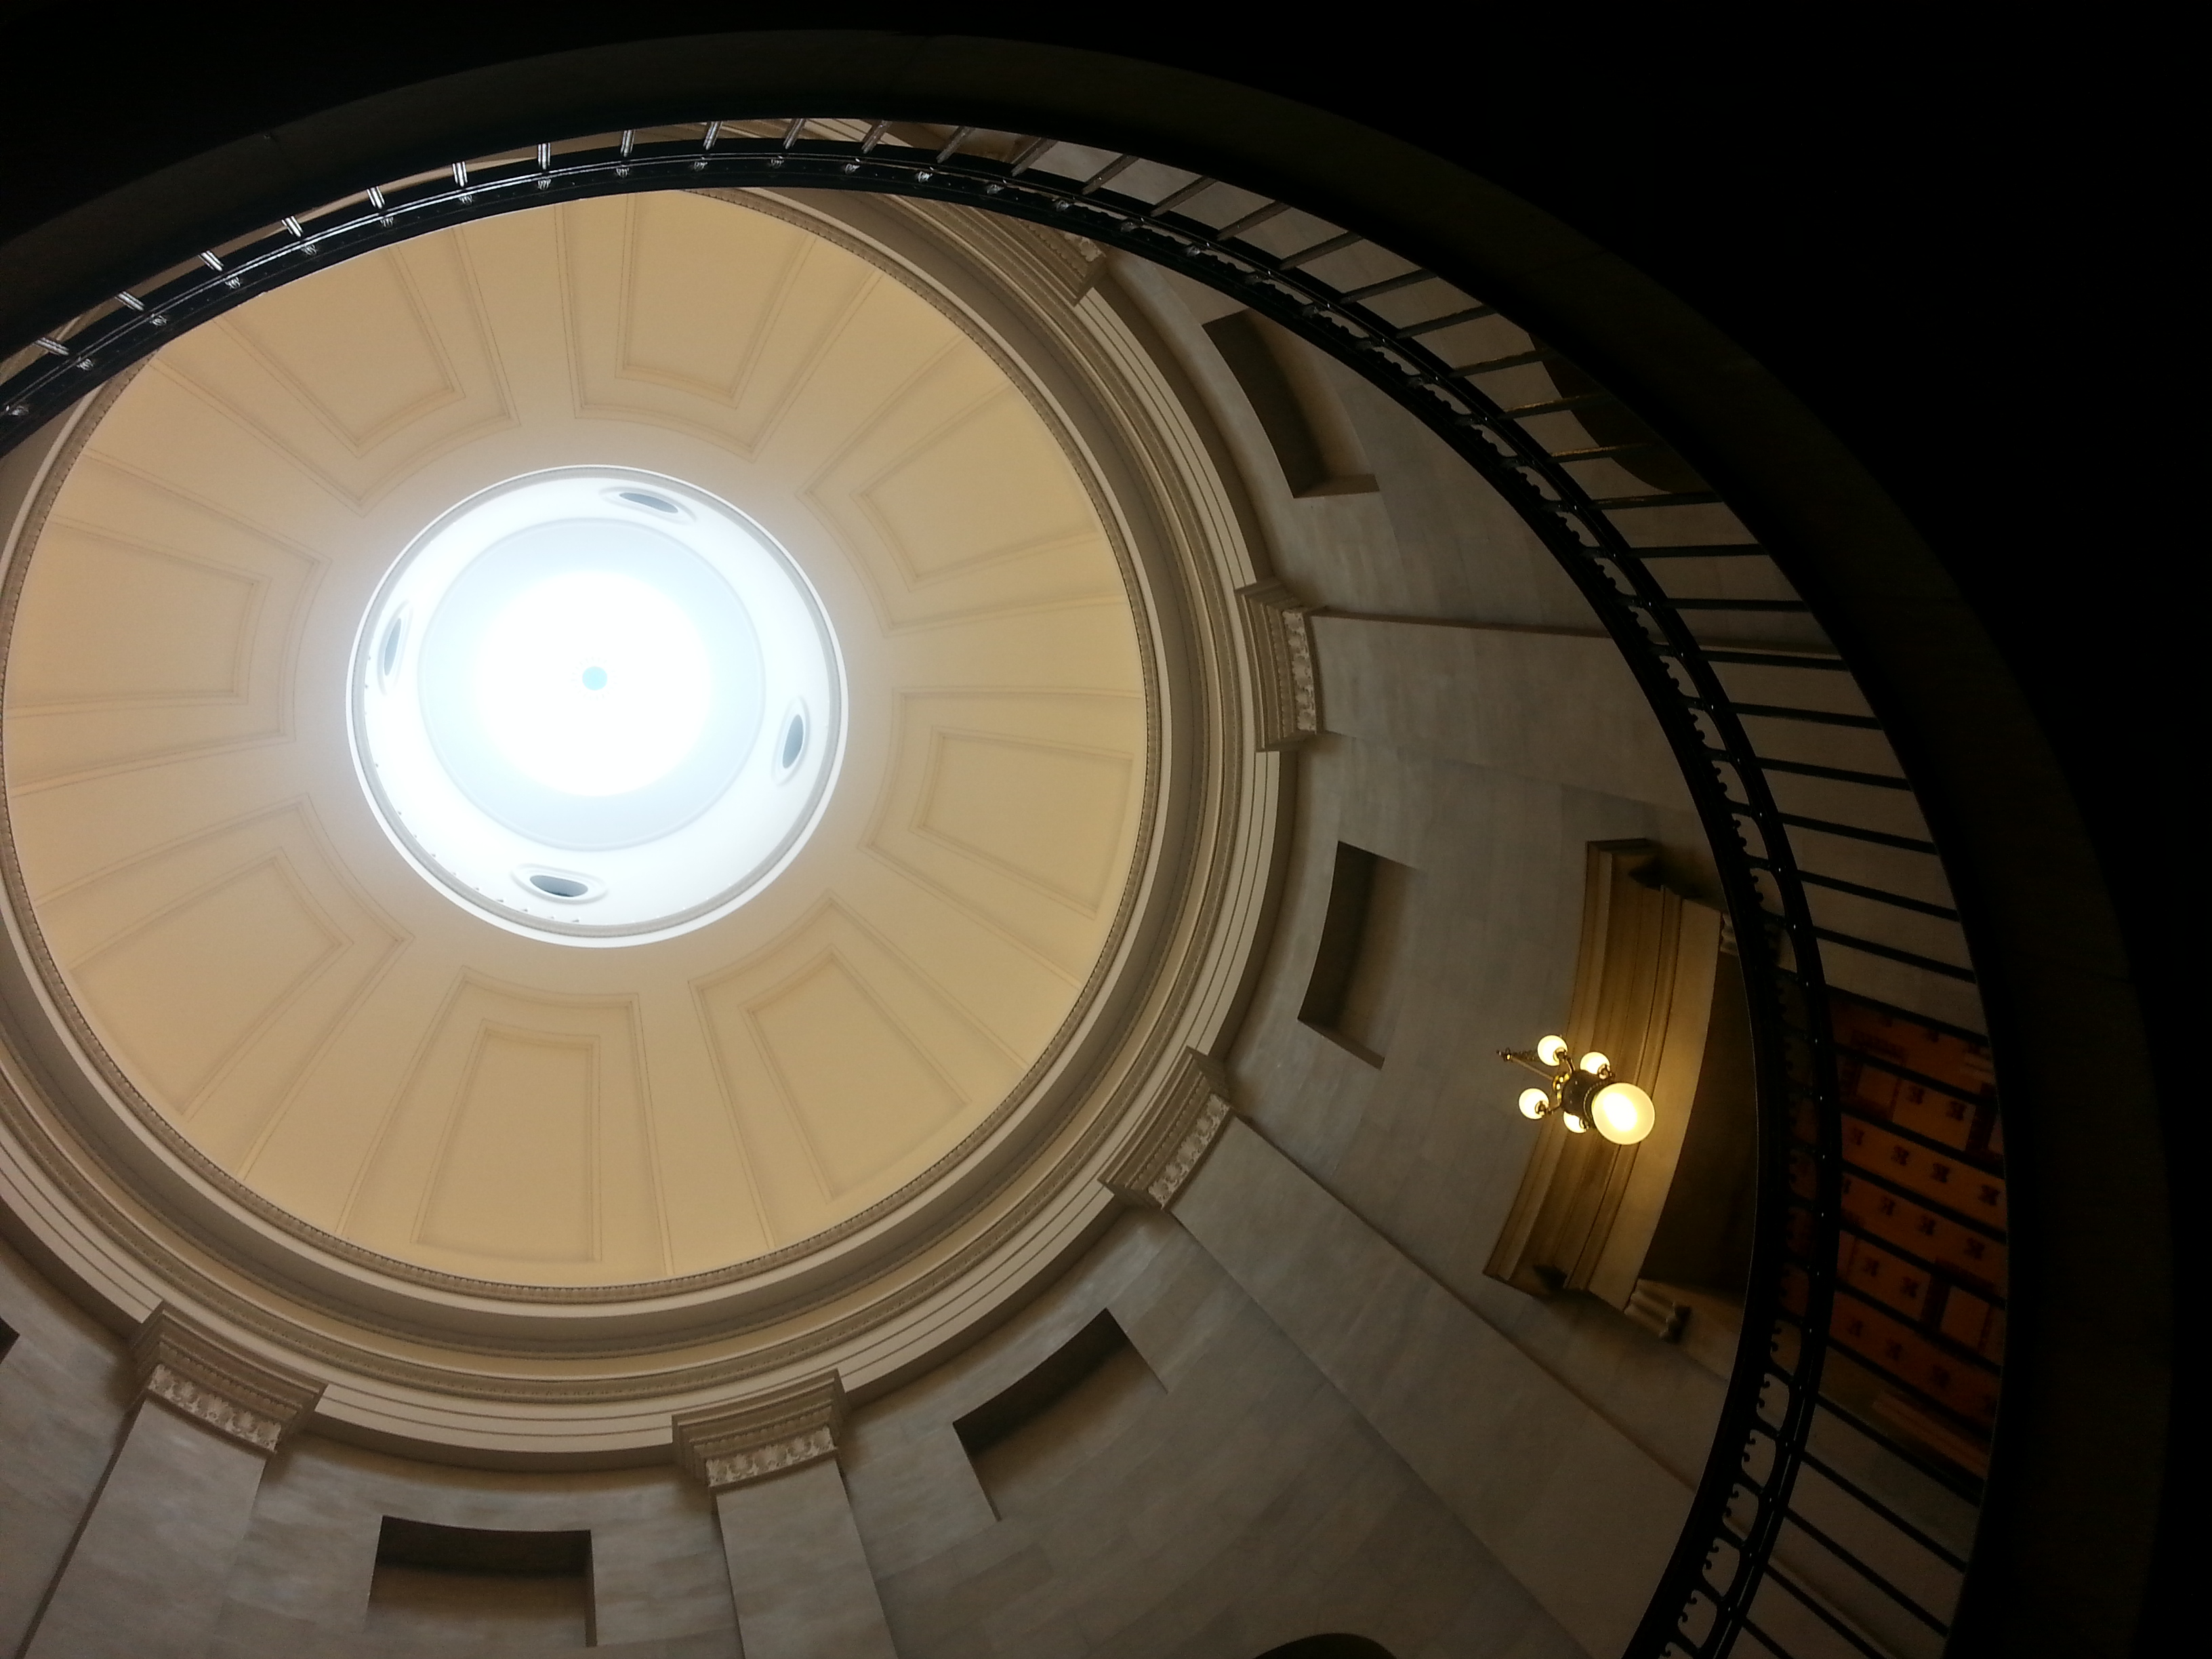 One of the Capitol's most distinctive features: its Rotunda.